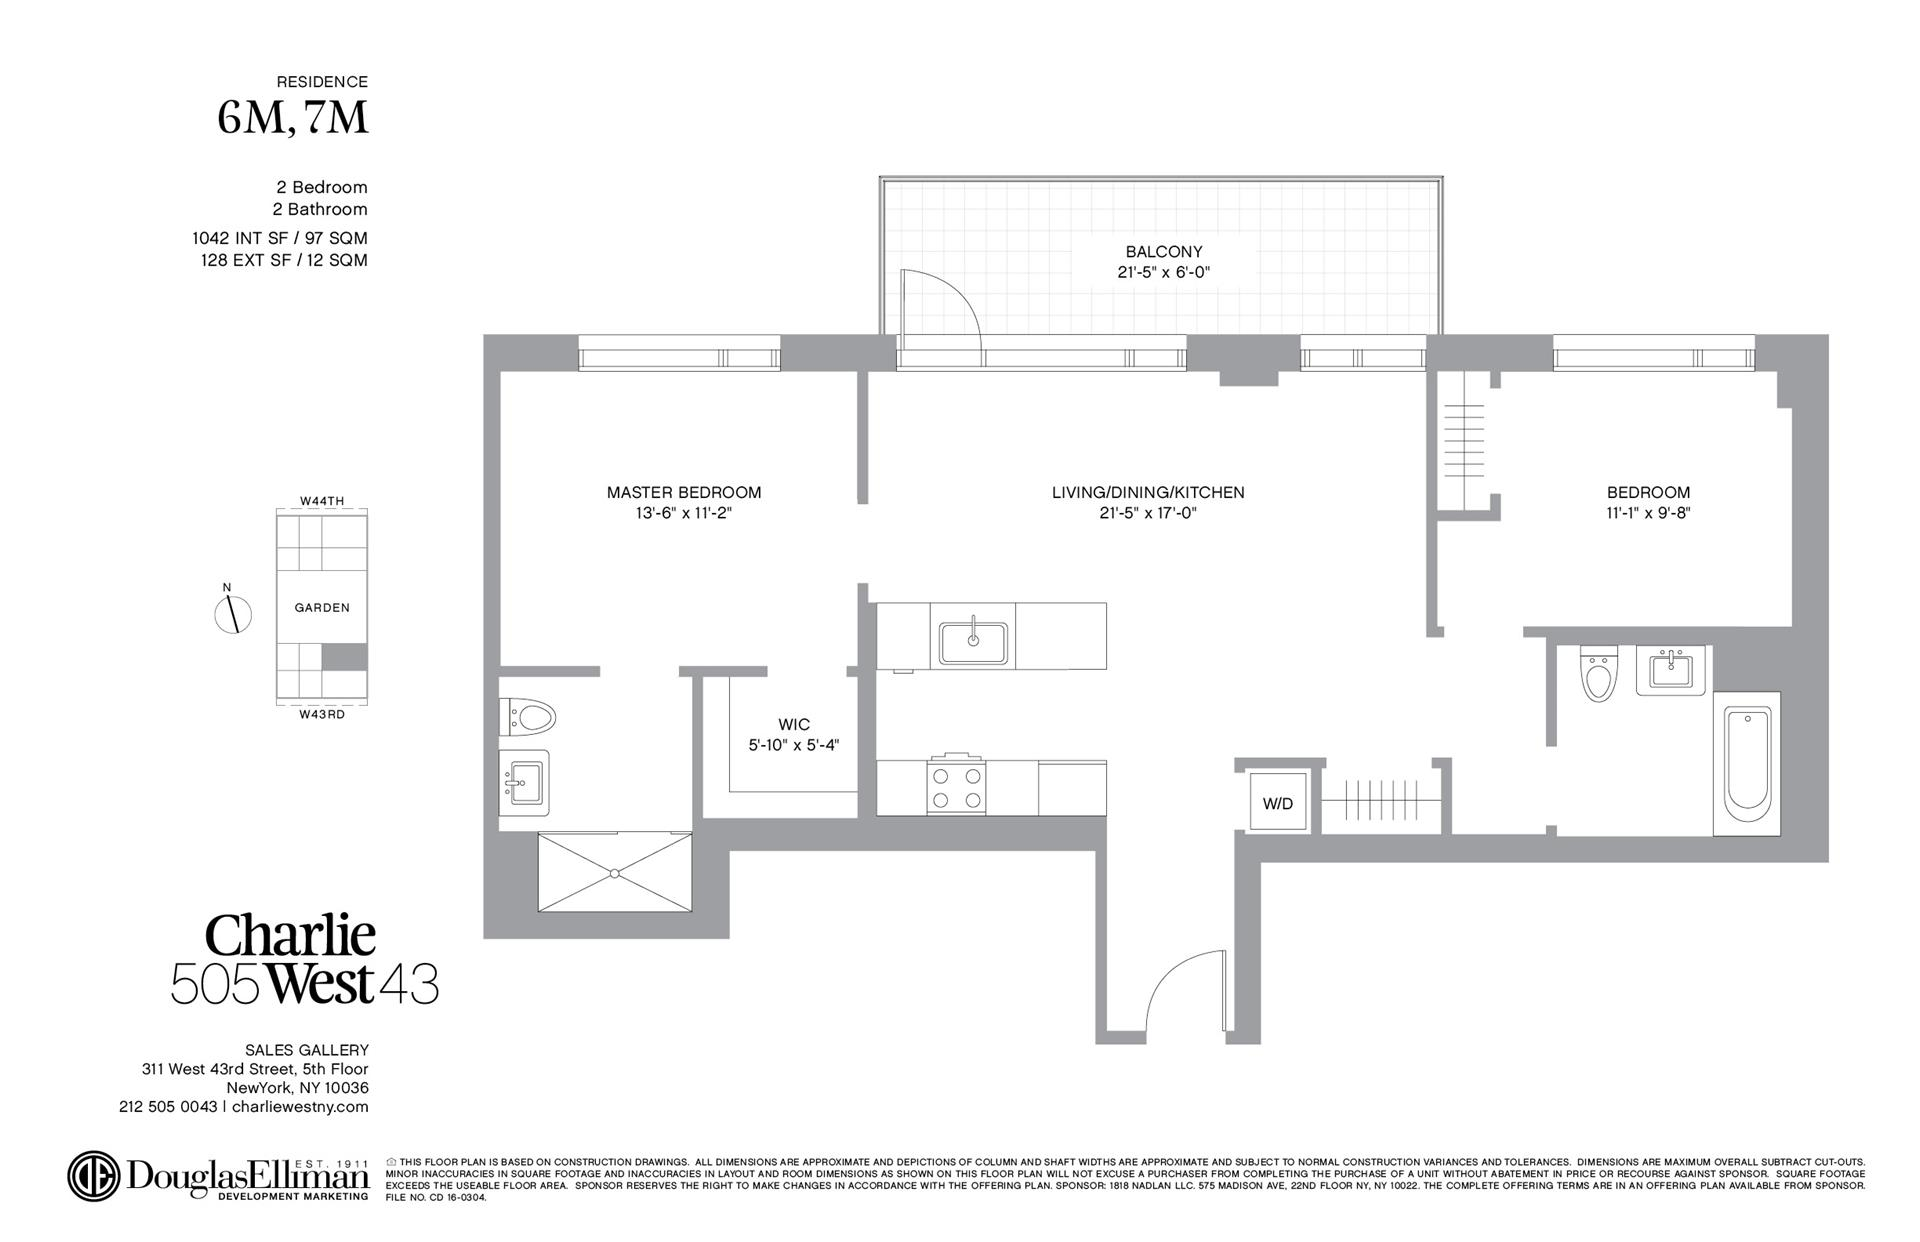 Floor plan of 505 West 43rd Street, 7M - Clinton, New York